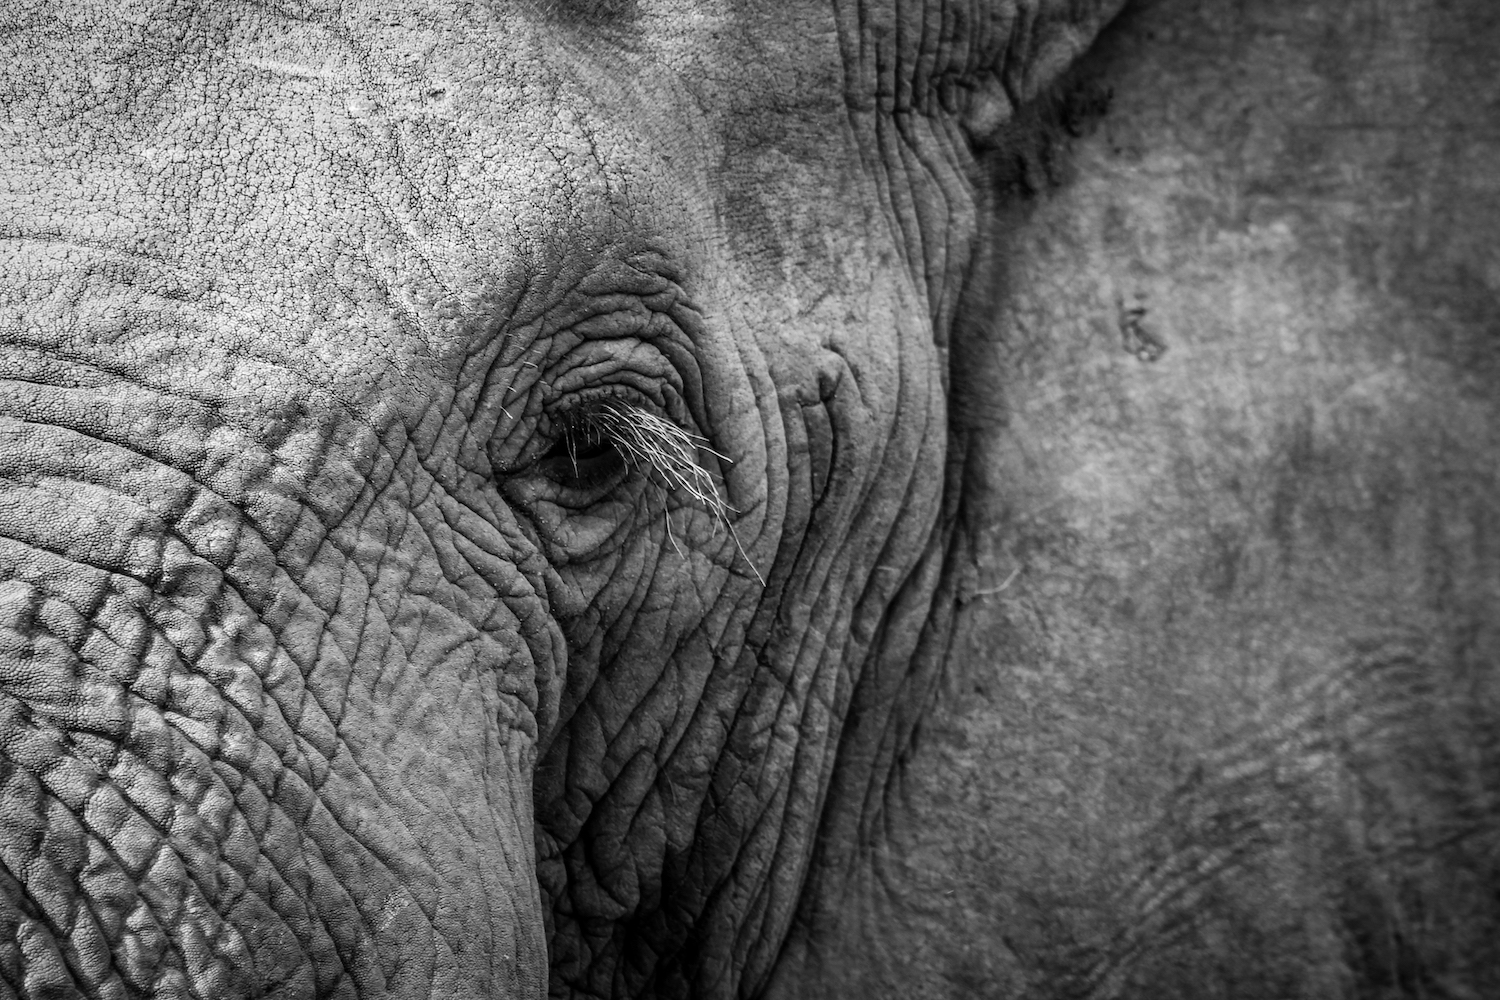 Elephant Close-up, South Africa, Canon DSLR